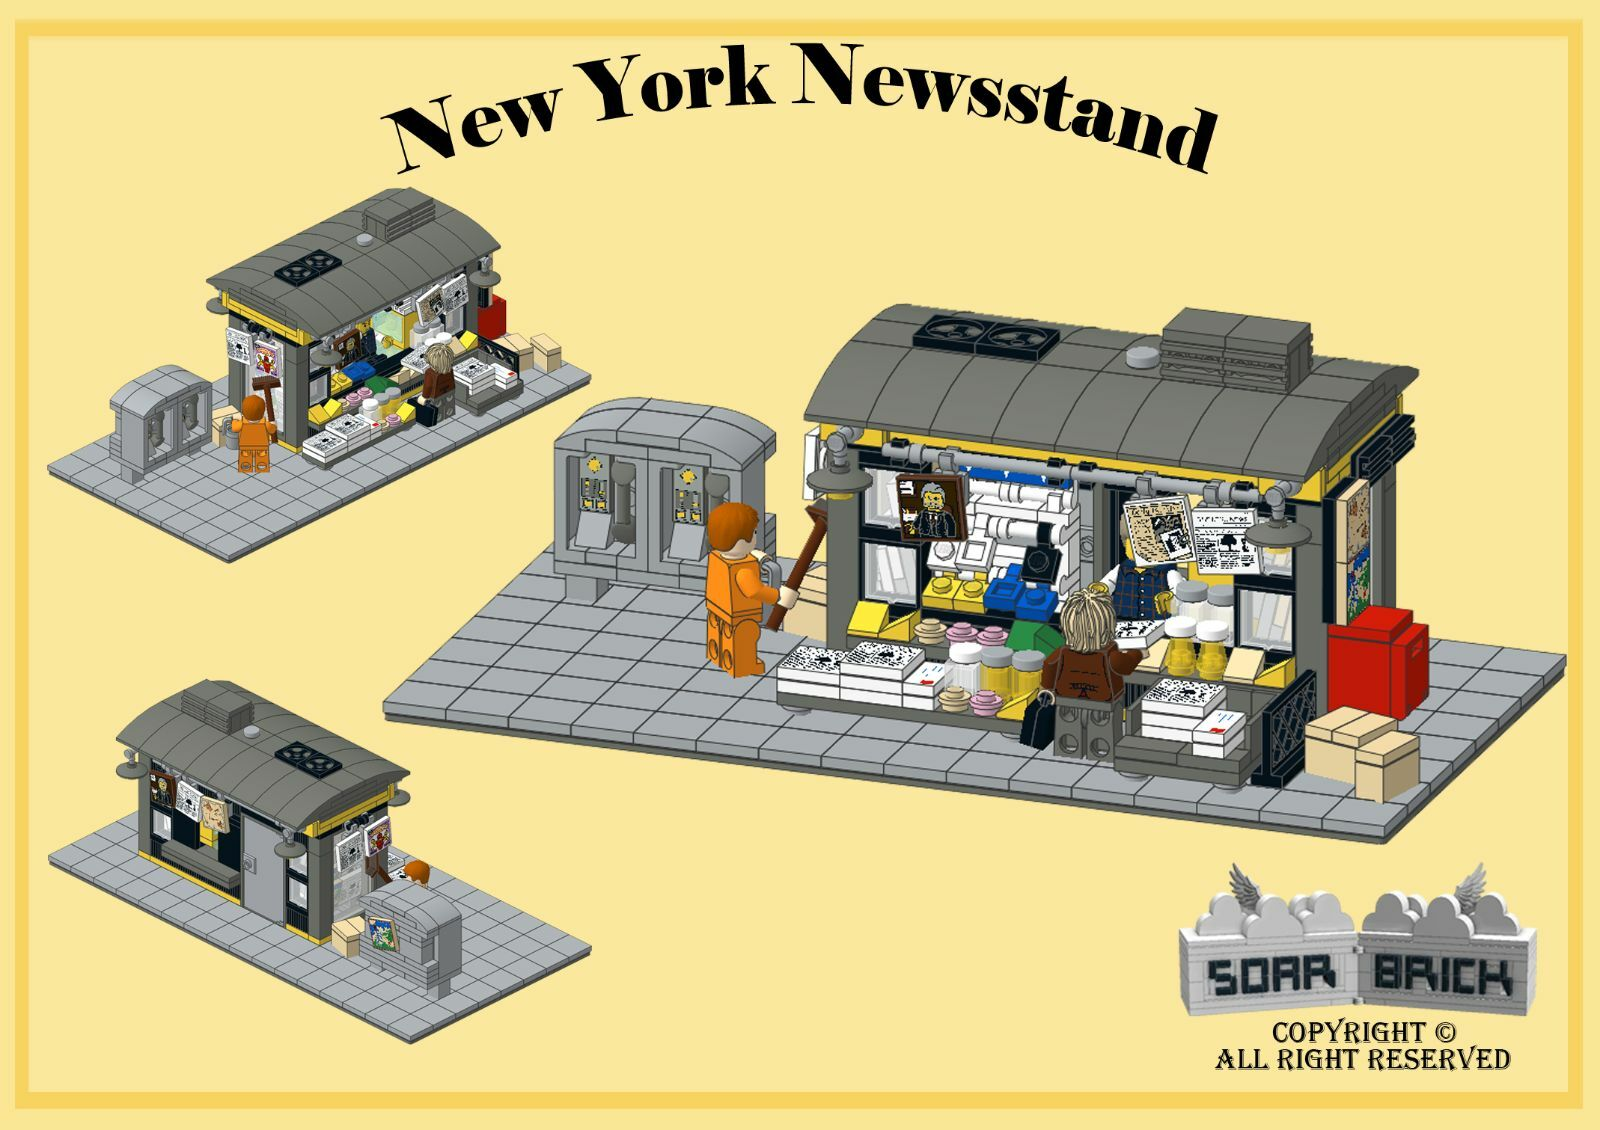 Custom Instruction Consisting Of Lego Elements New York Newsstand